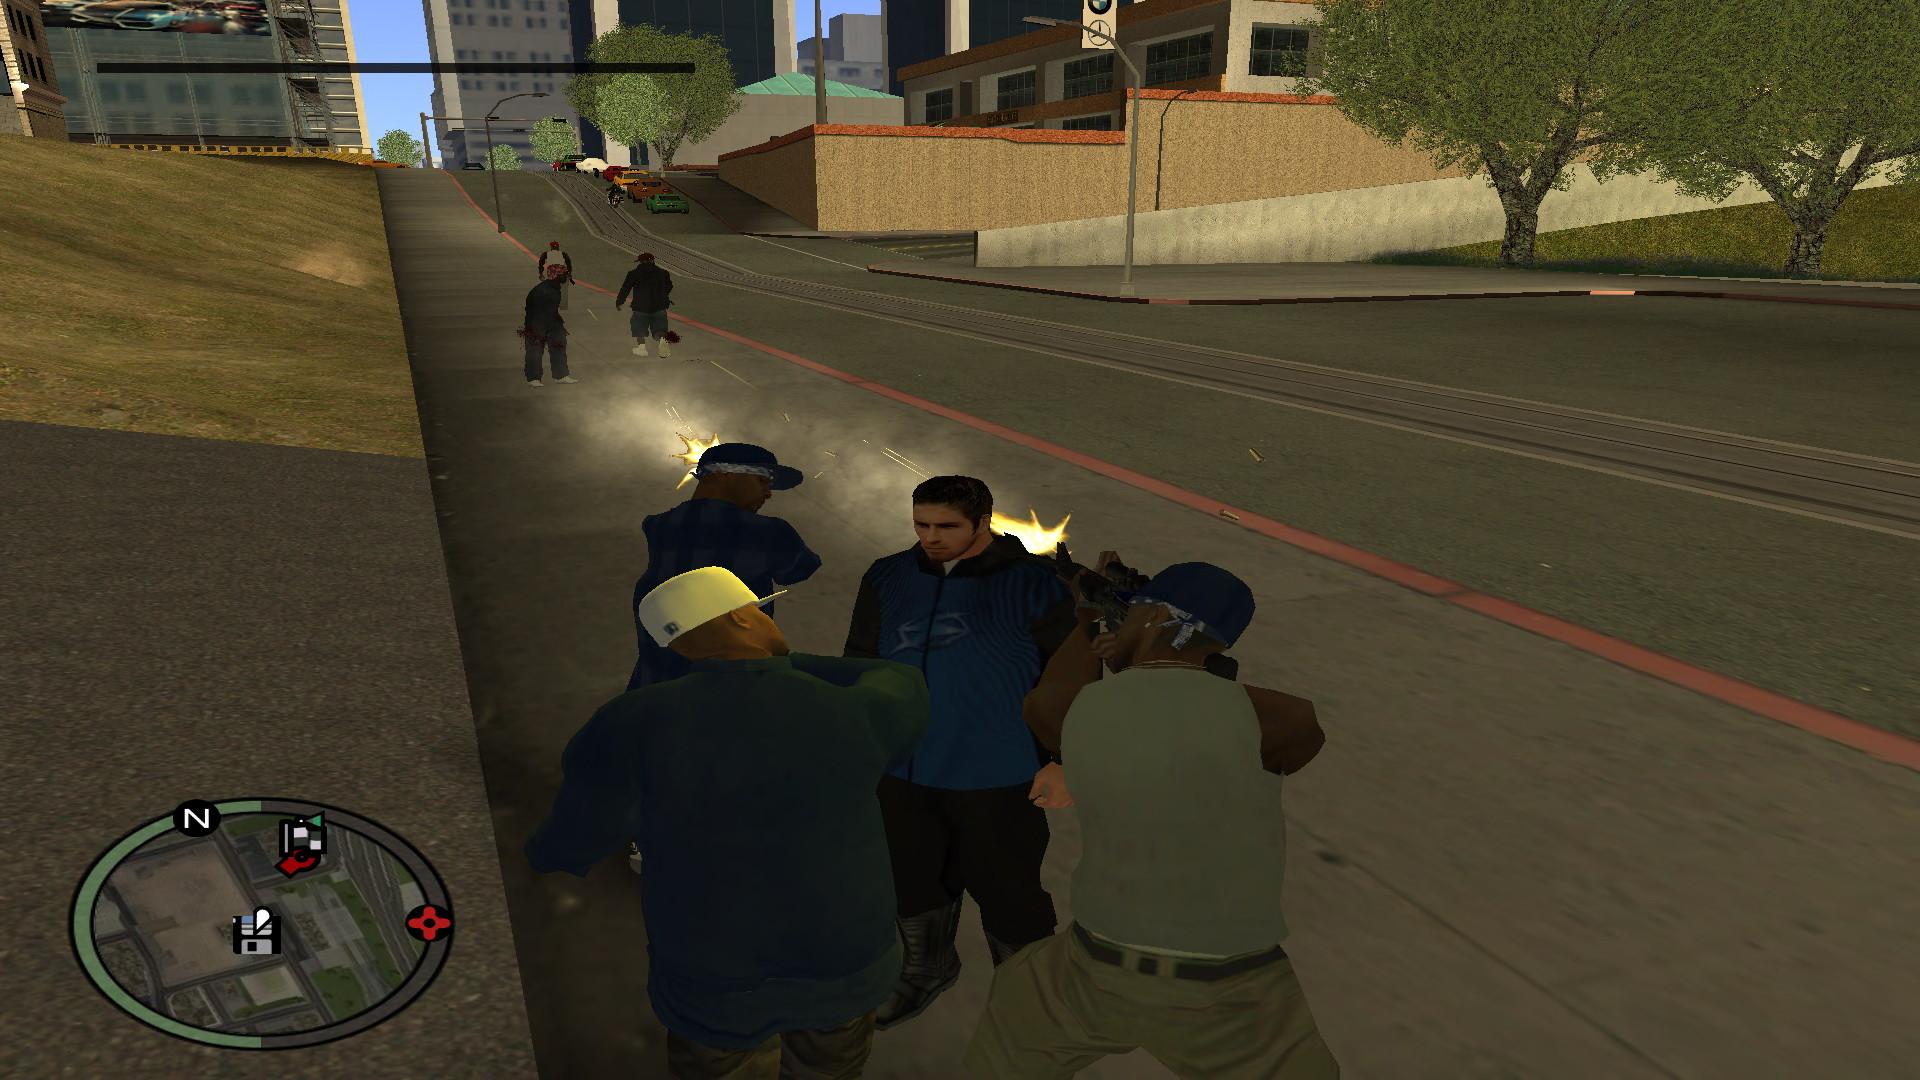 1920x1080 Add media Report RSS Crips Gang Friends shooting Bloods Enemies (view  original)